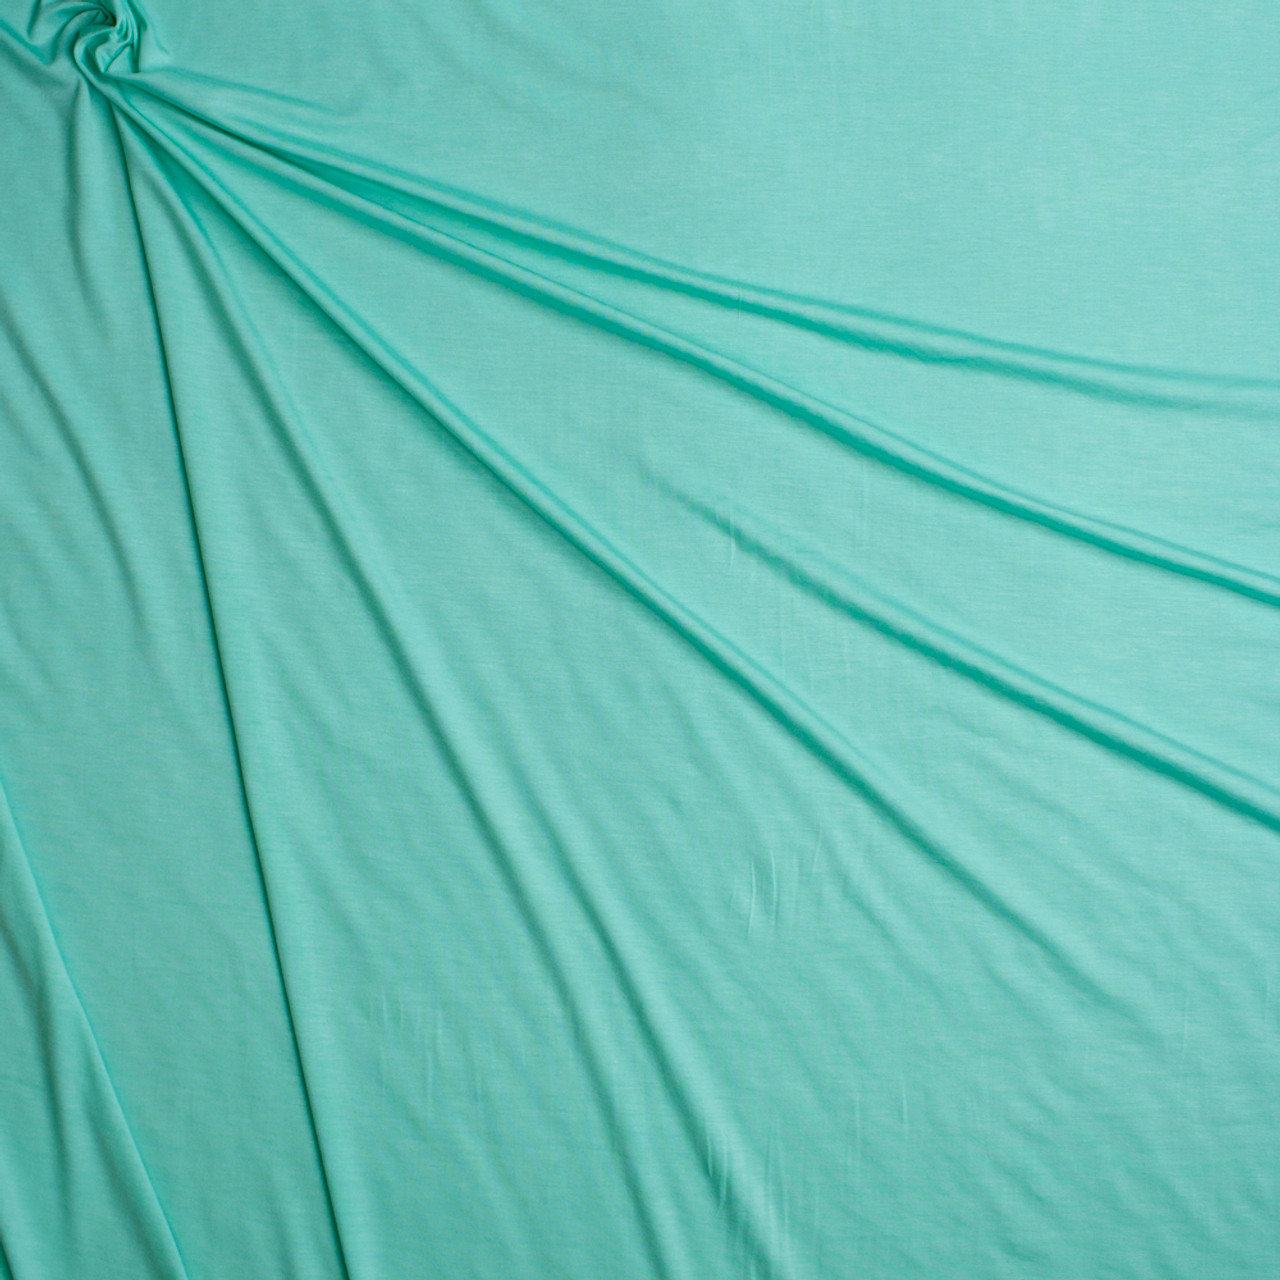 5797268edef ... Mint Green Stretch Modal Jersey Knit Fabric By The Yard - Wide shot